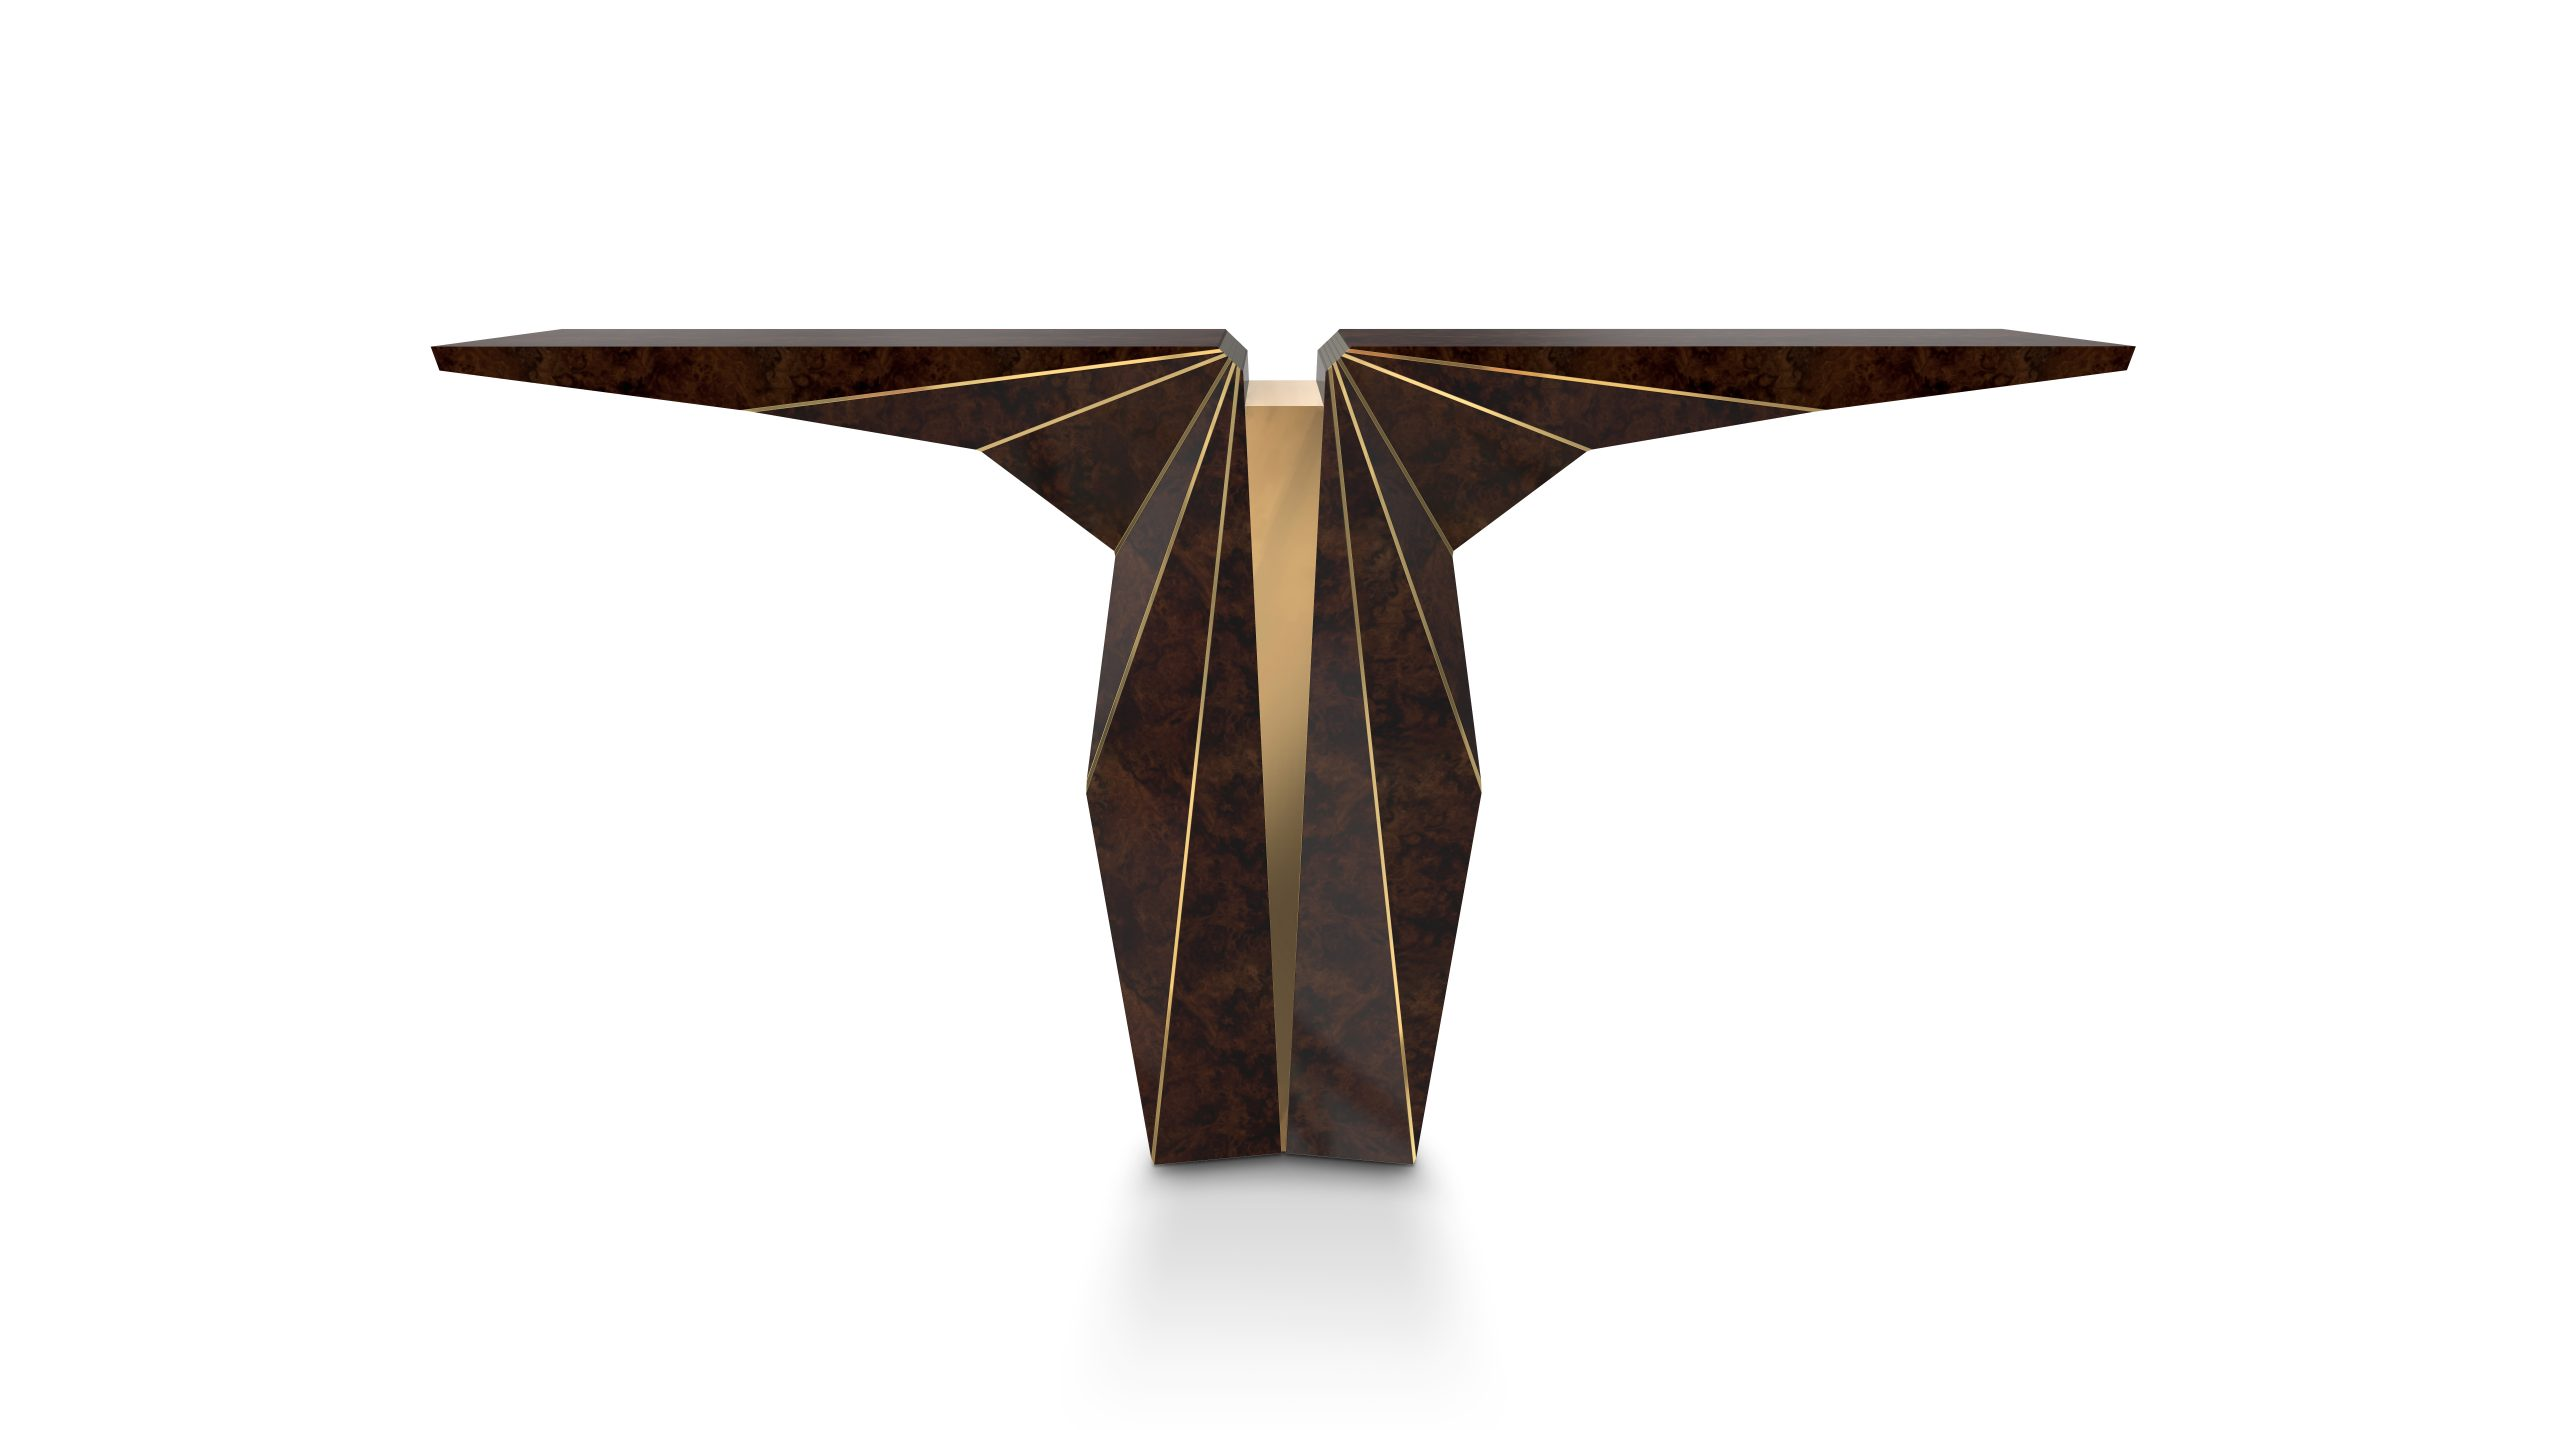 Luxury Furniture: The Suspicion Wood Console